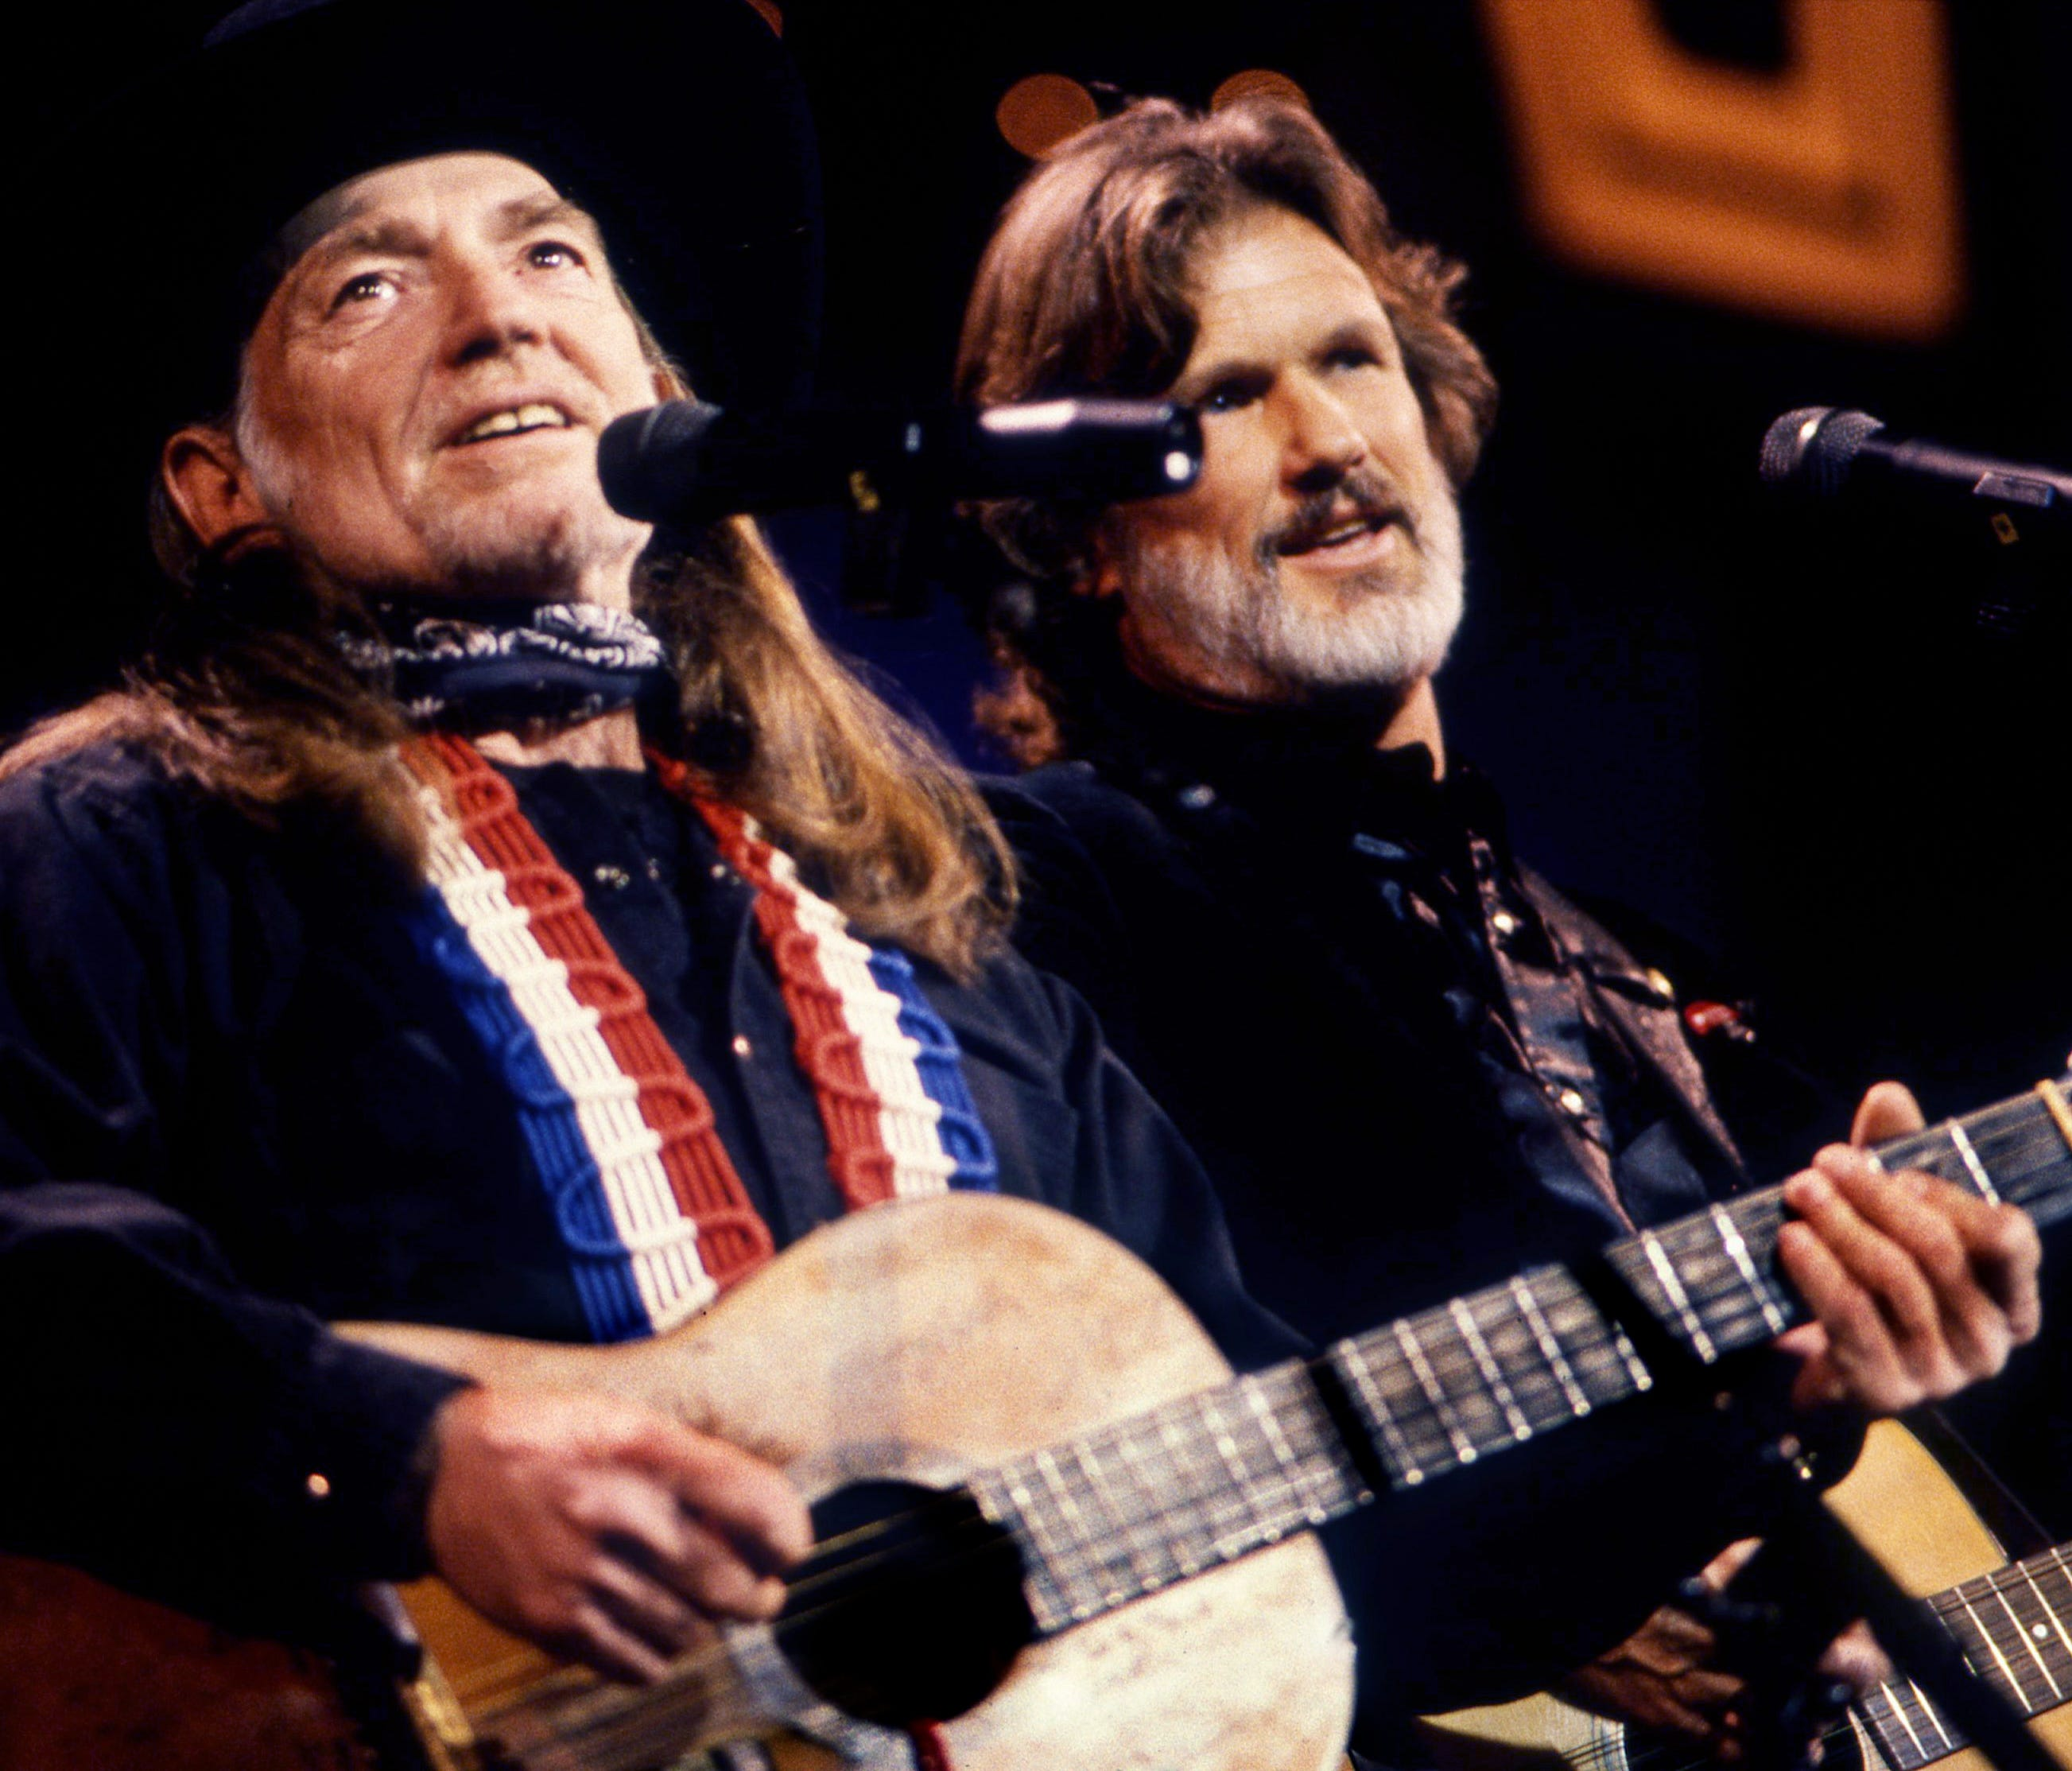 Willie Nelson, left, and Kris Kristofferson are performing